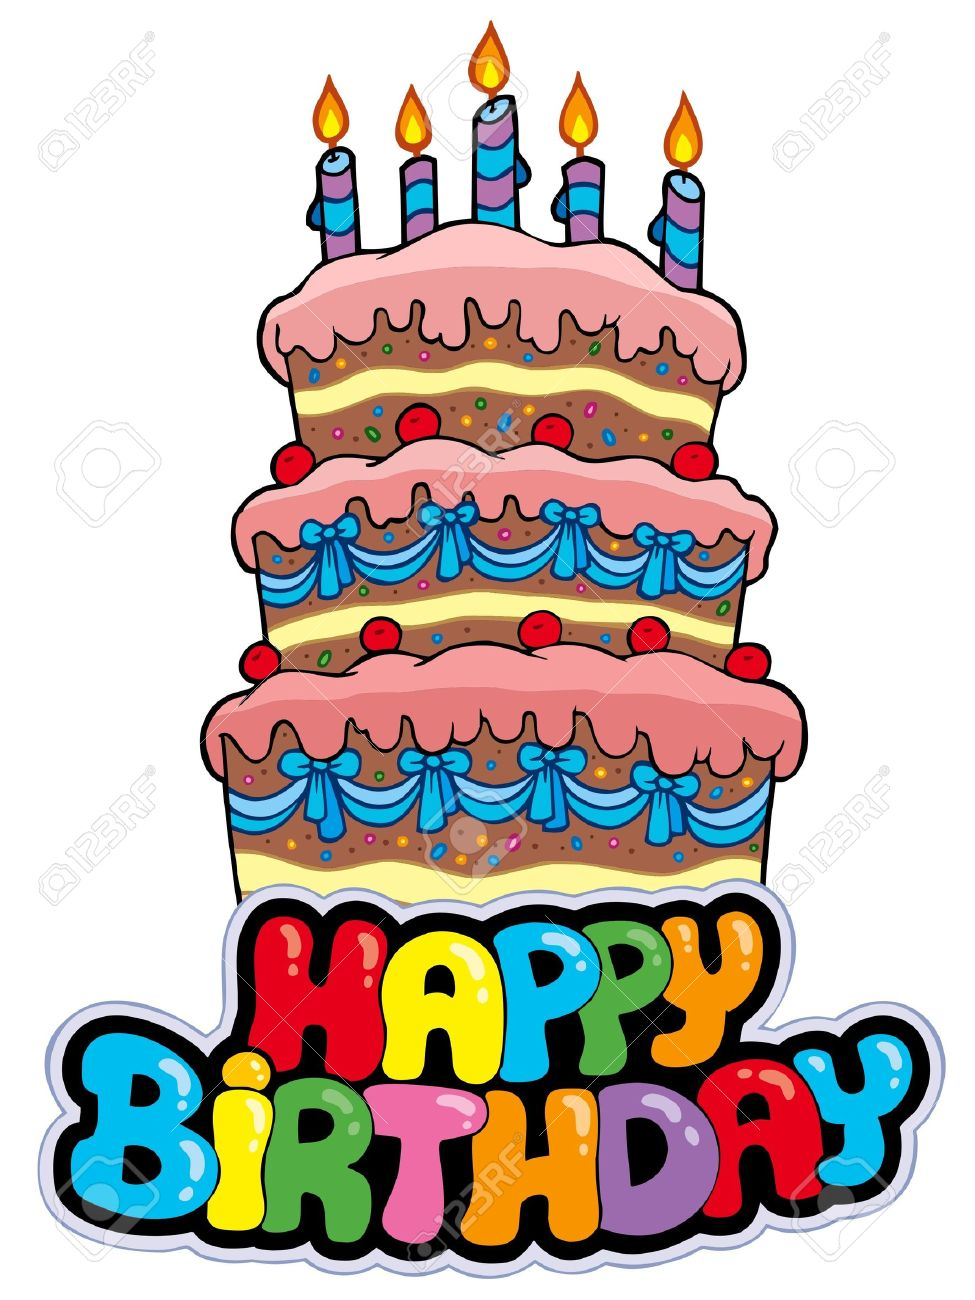 big happy birthday sign ; 7929323-happy-birthday-sign-with-tall-cake-illustration-